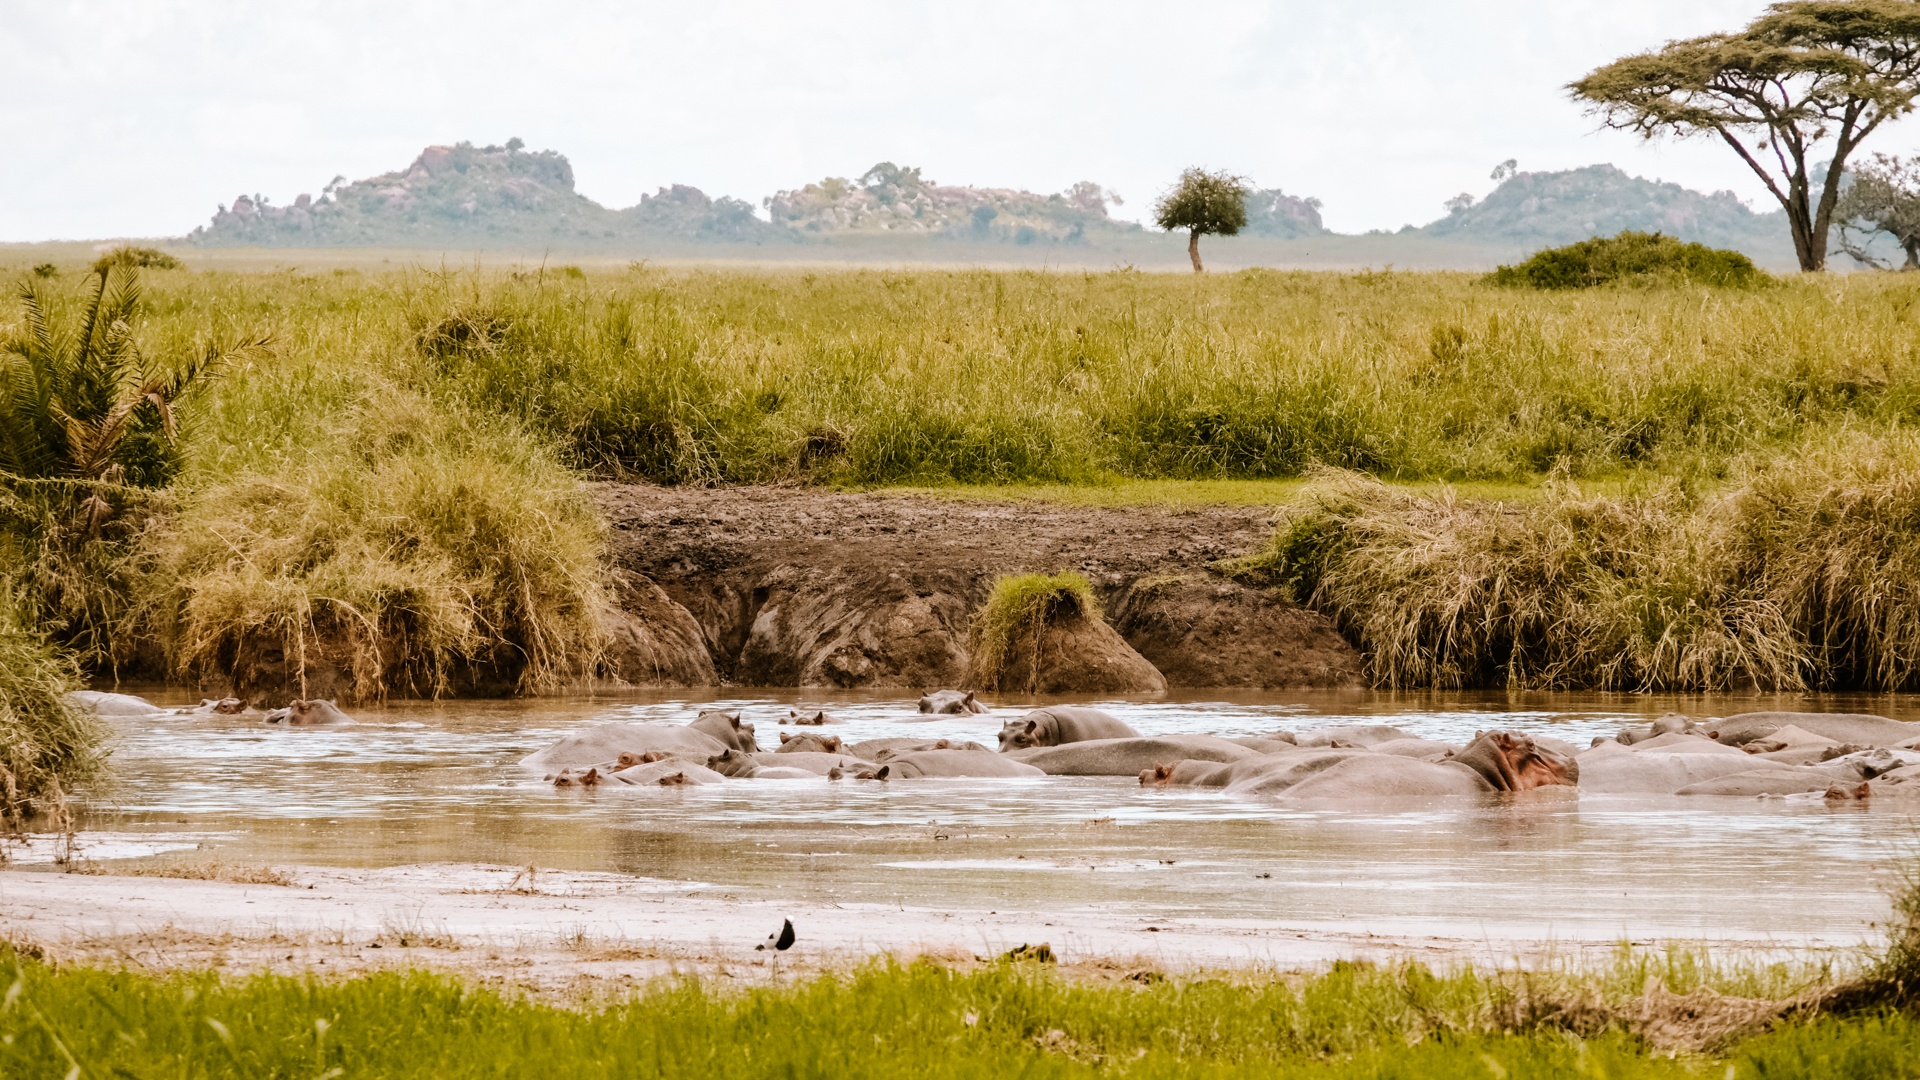 A bunch of happy hippos having the time of their lives in the Serengeti National Park, Tanzania